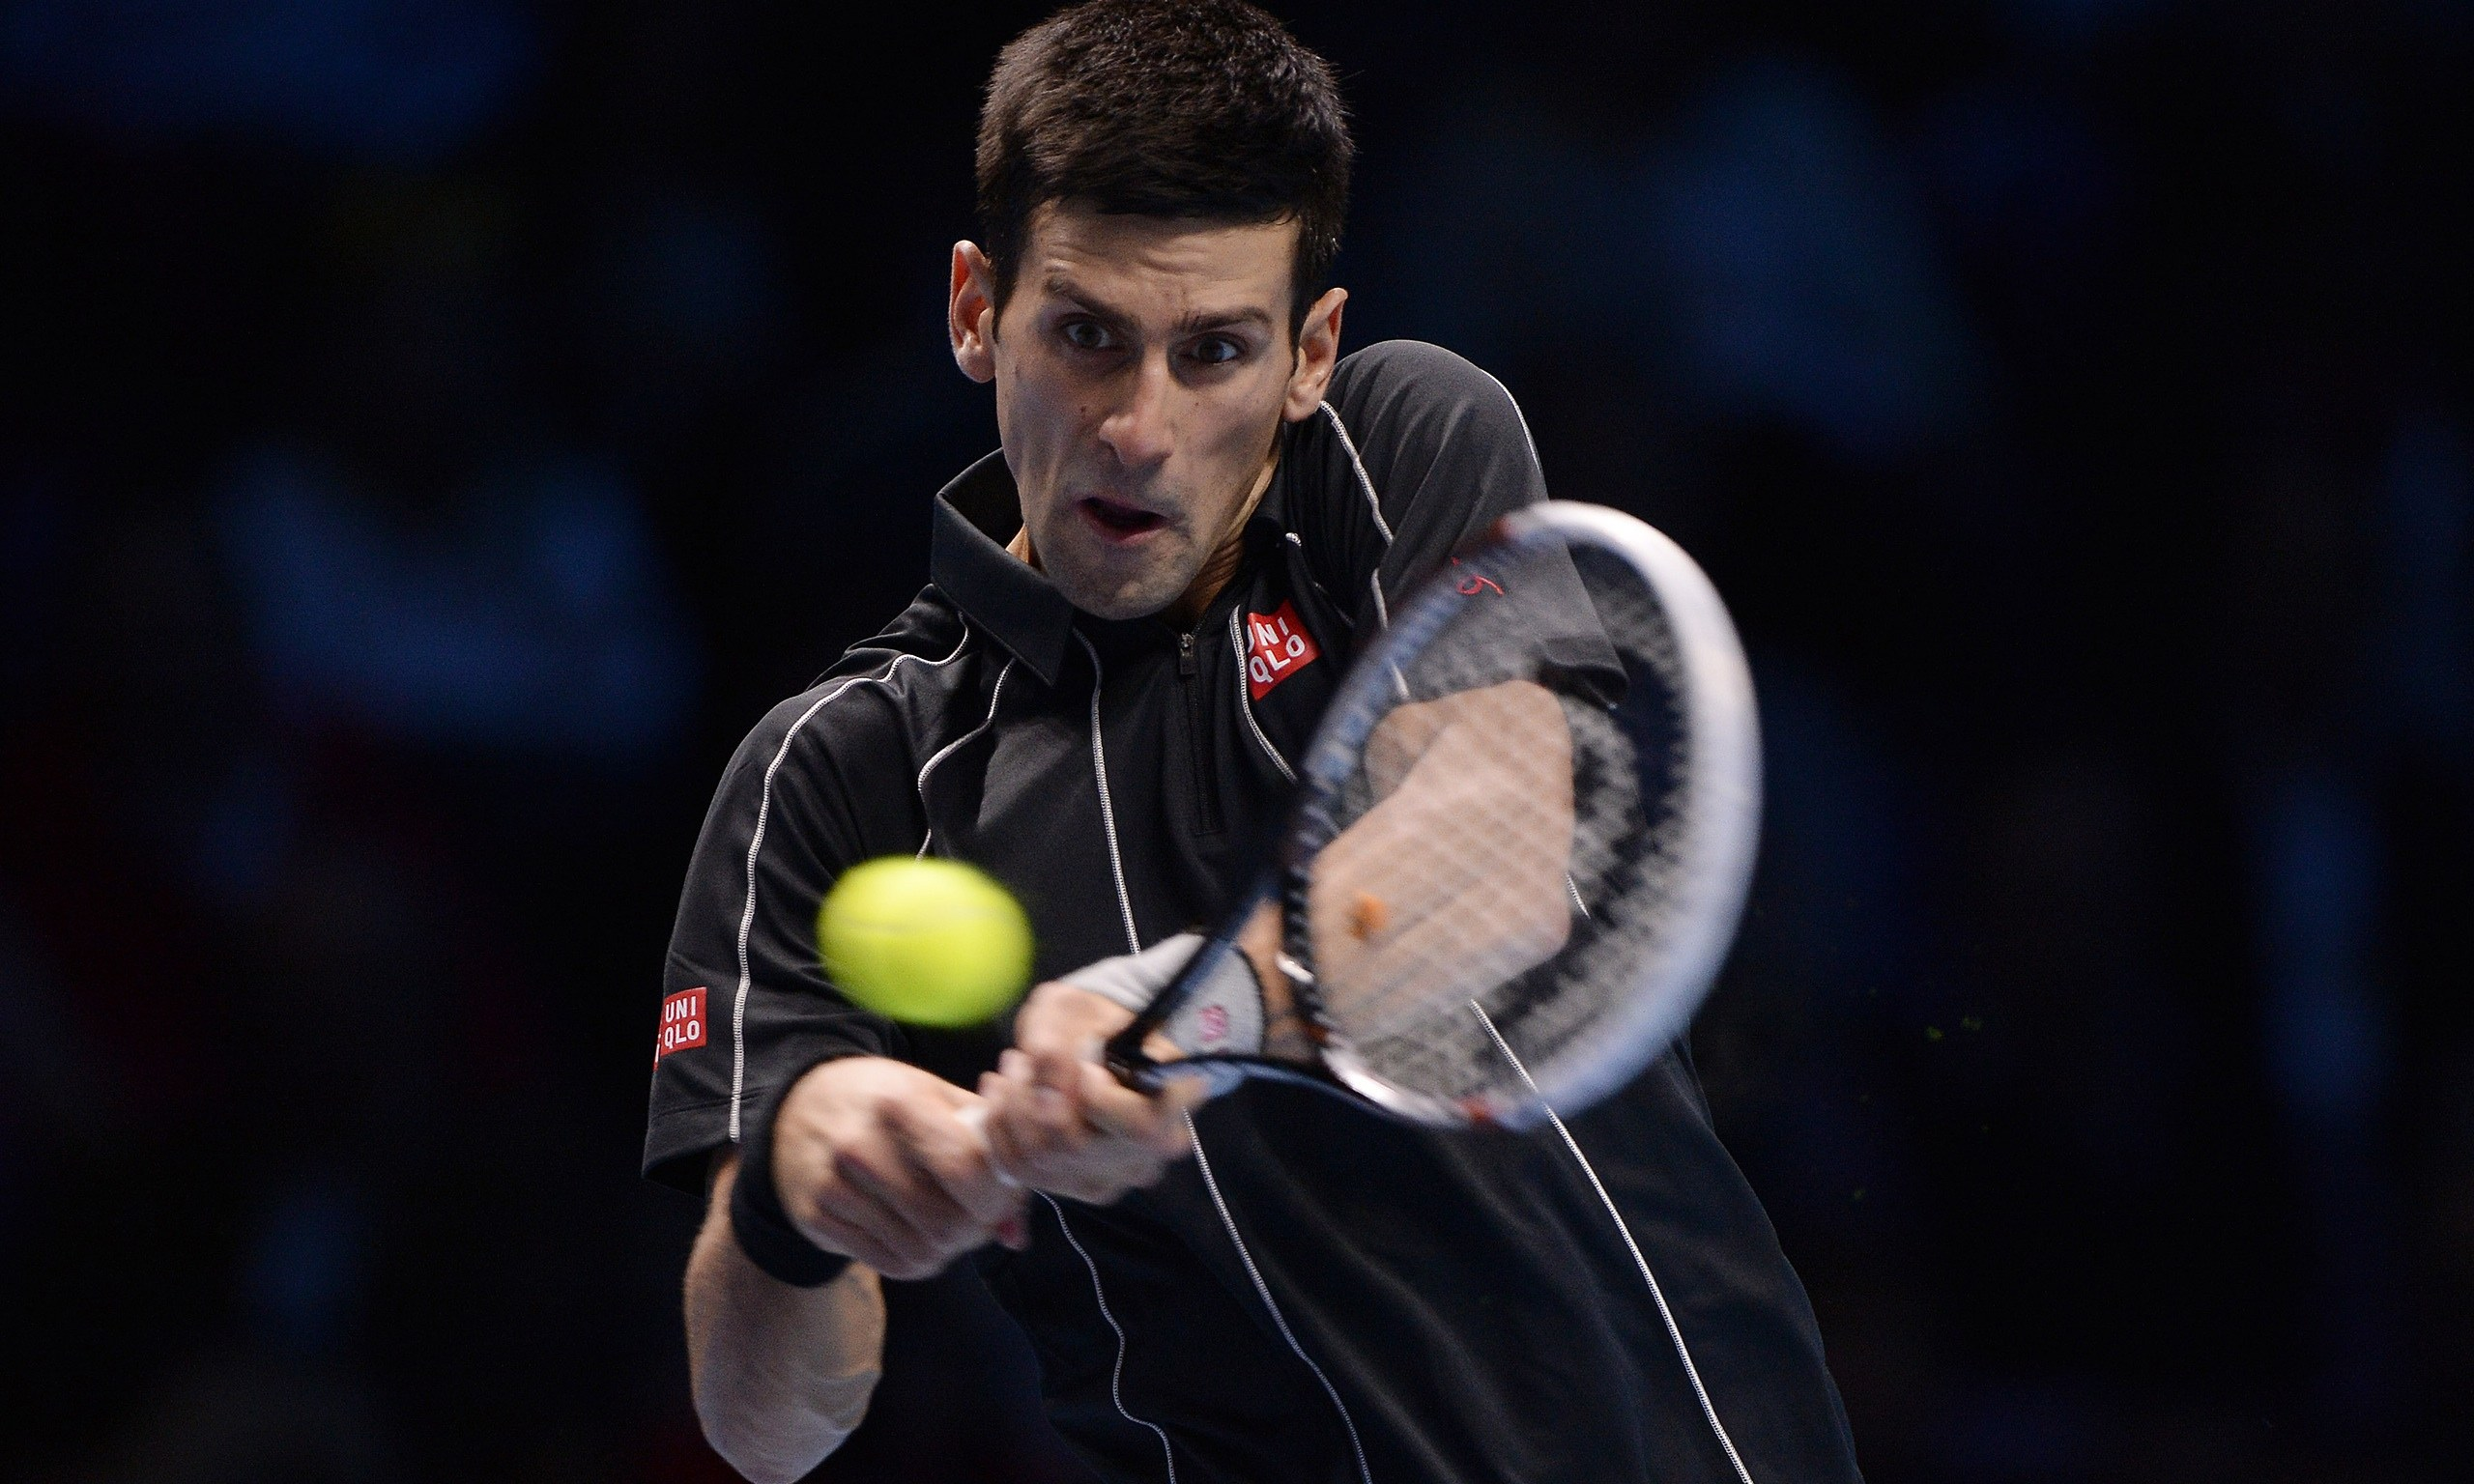 Djokovic Doping